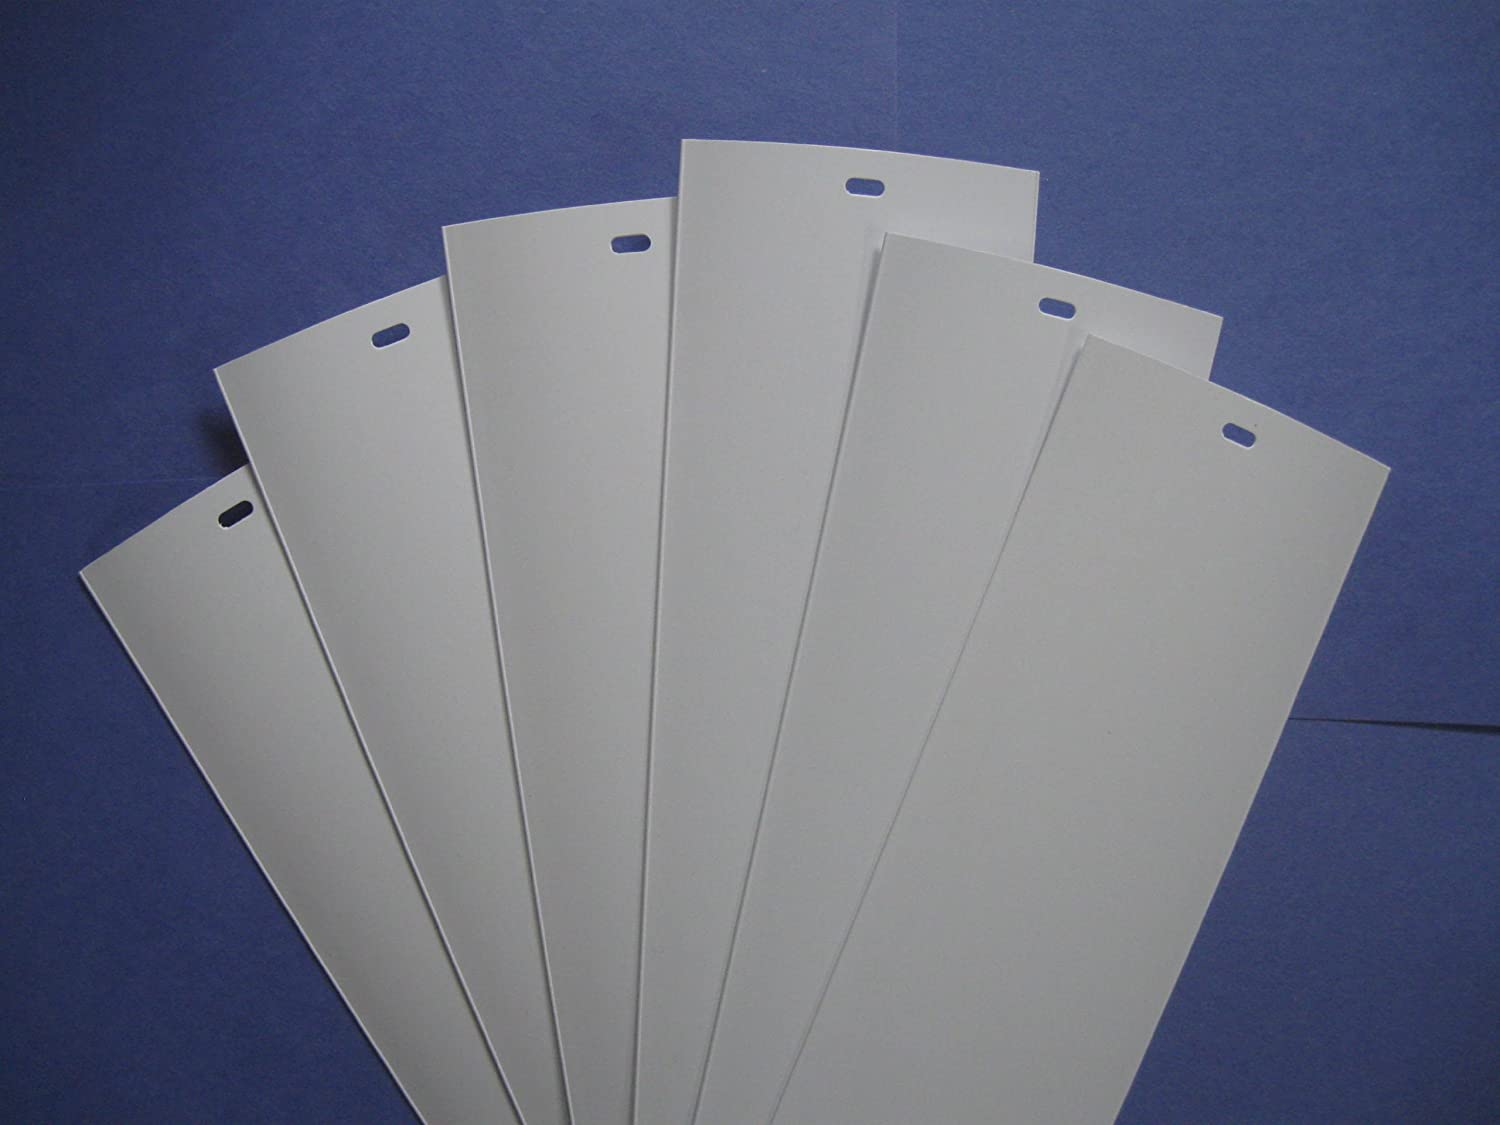 PVC Vertical Blind Replacement Slat Smooth (White) 6 Pk 82 1/2 x 3 1/2 by Royal Window Coverings